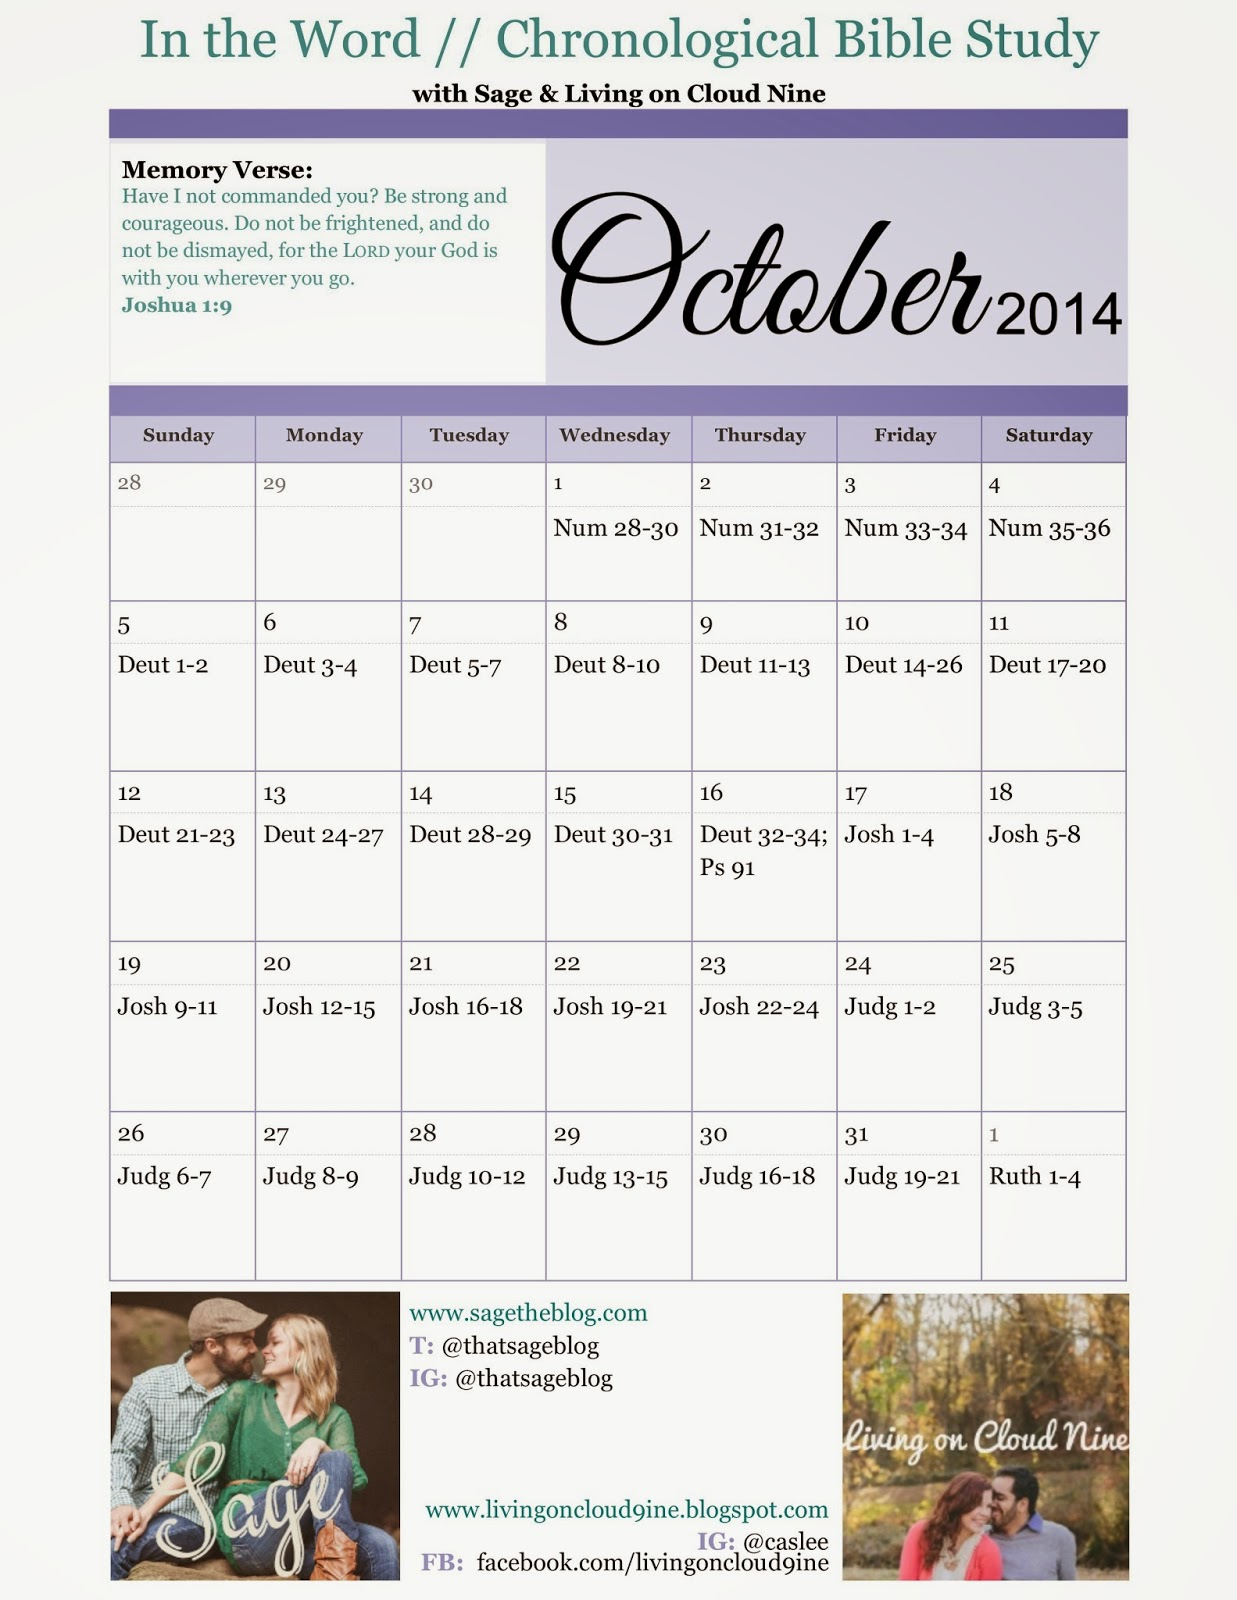 In the Word in One Year Chronological Bible Study Calendar October